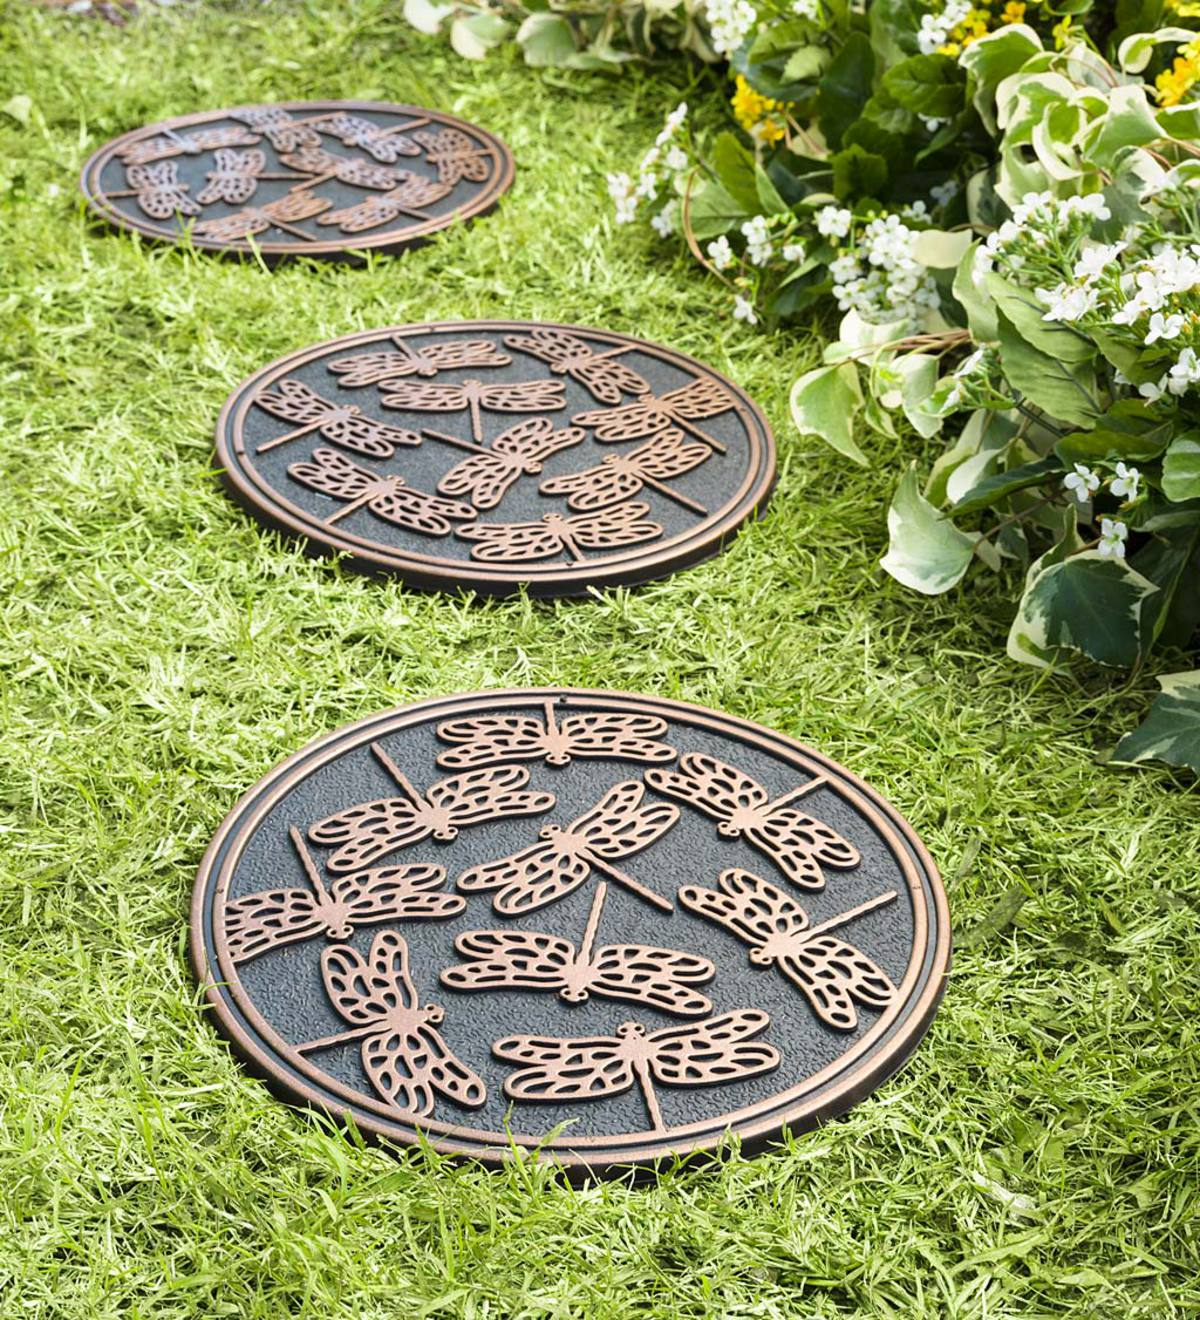 Recycled Rubber Stepping Stones, Set of 3 - Copper Dragonflies